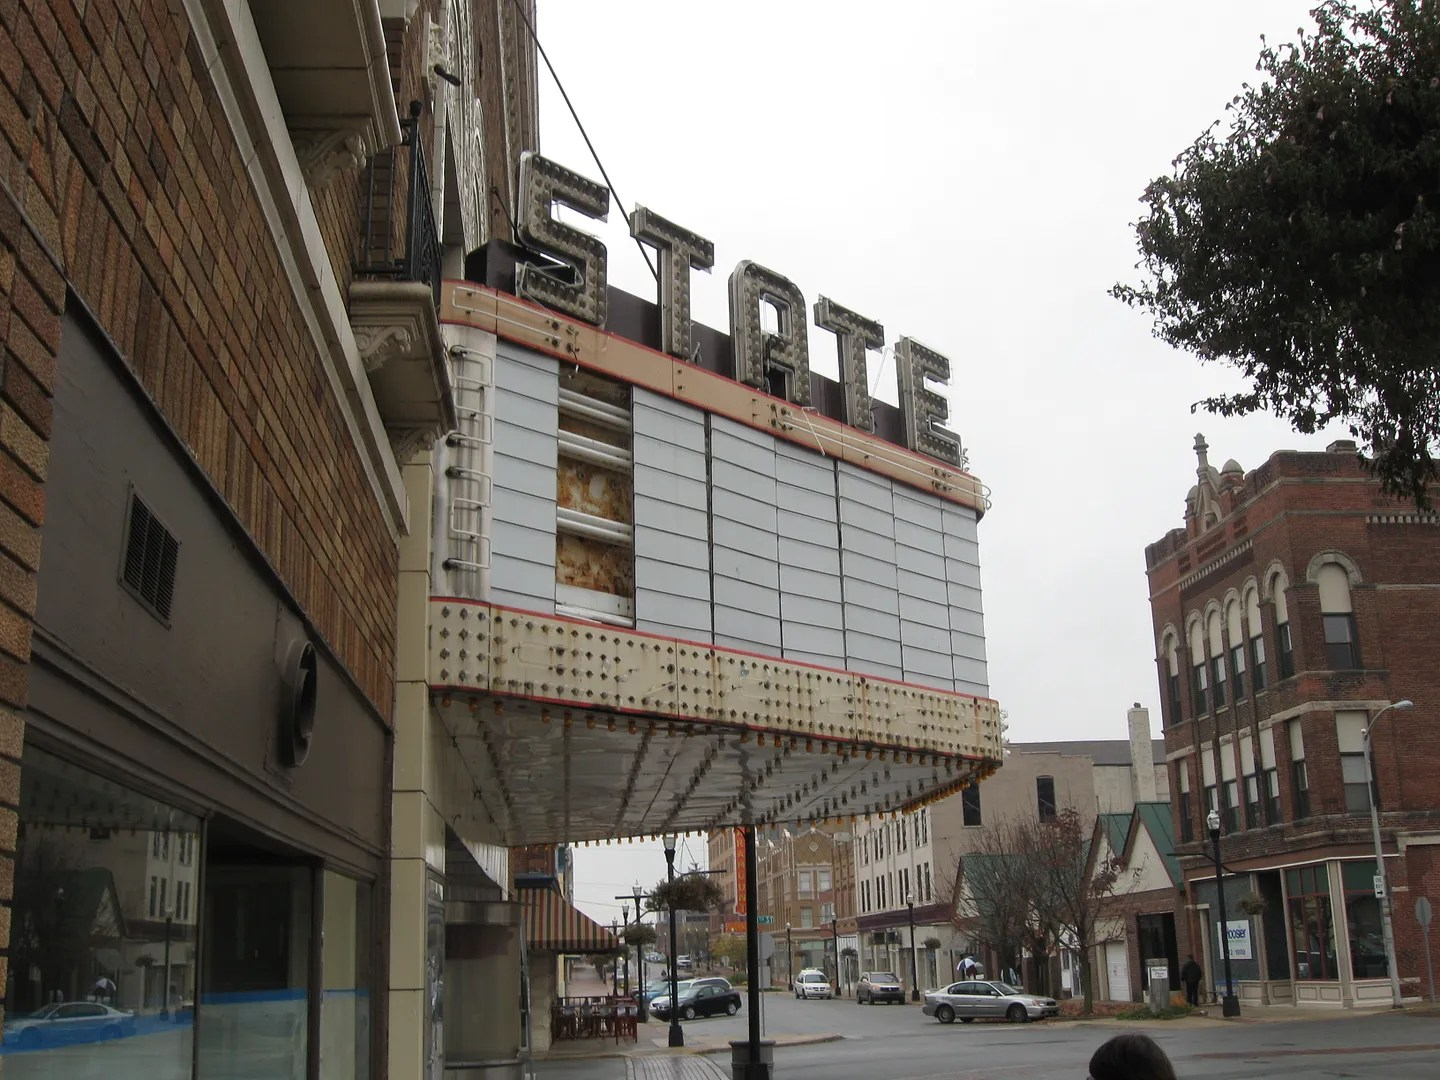 State Theatre, Anderson, Indiana